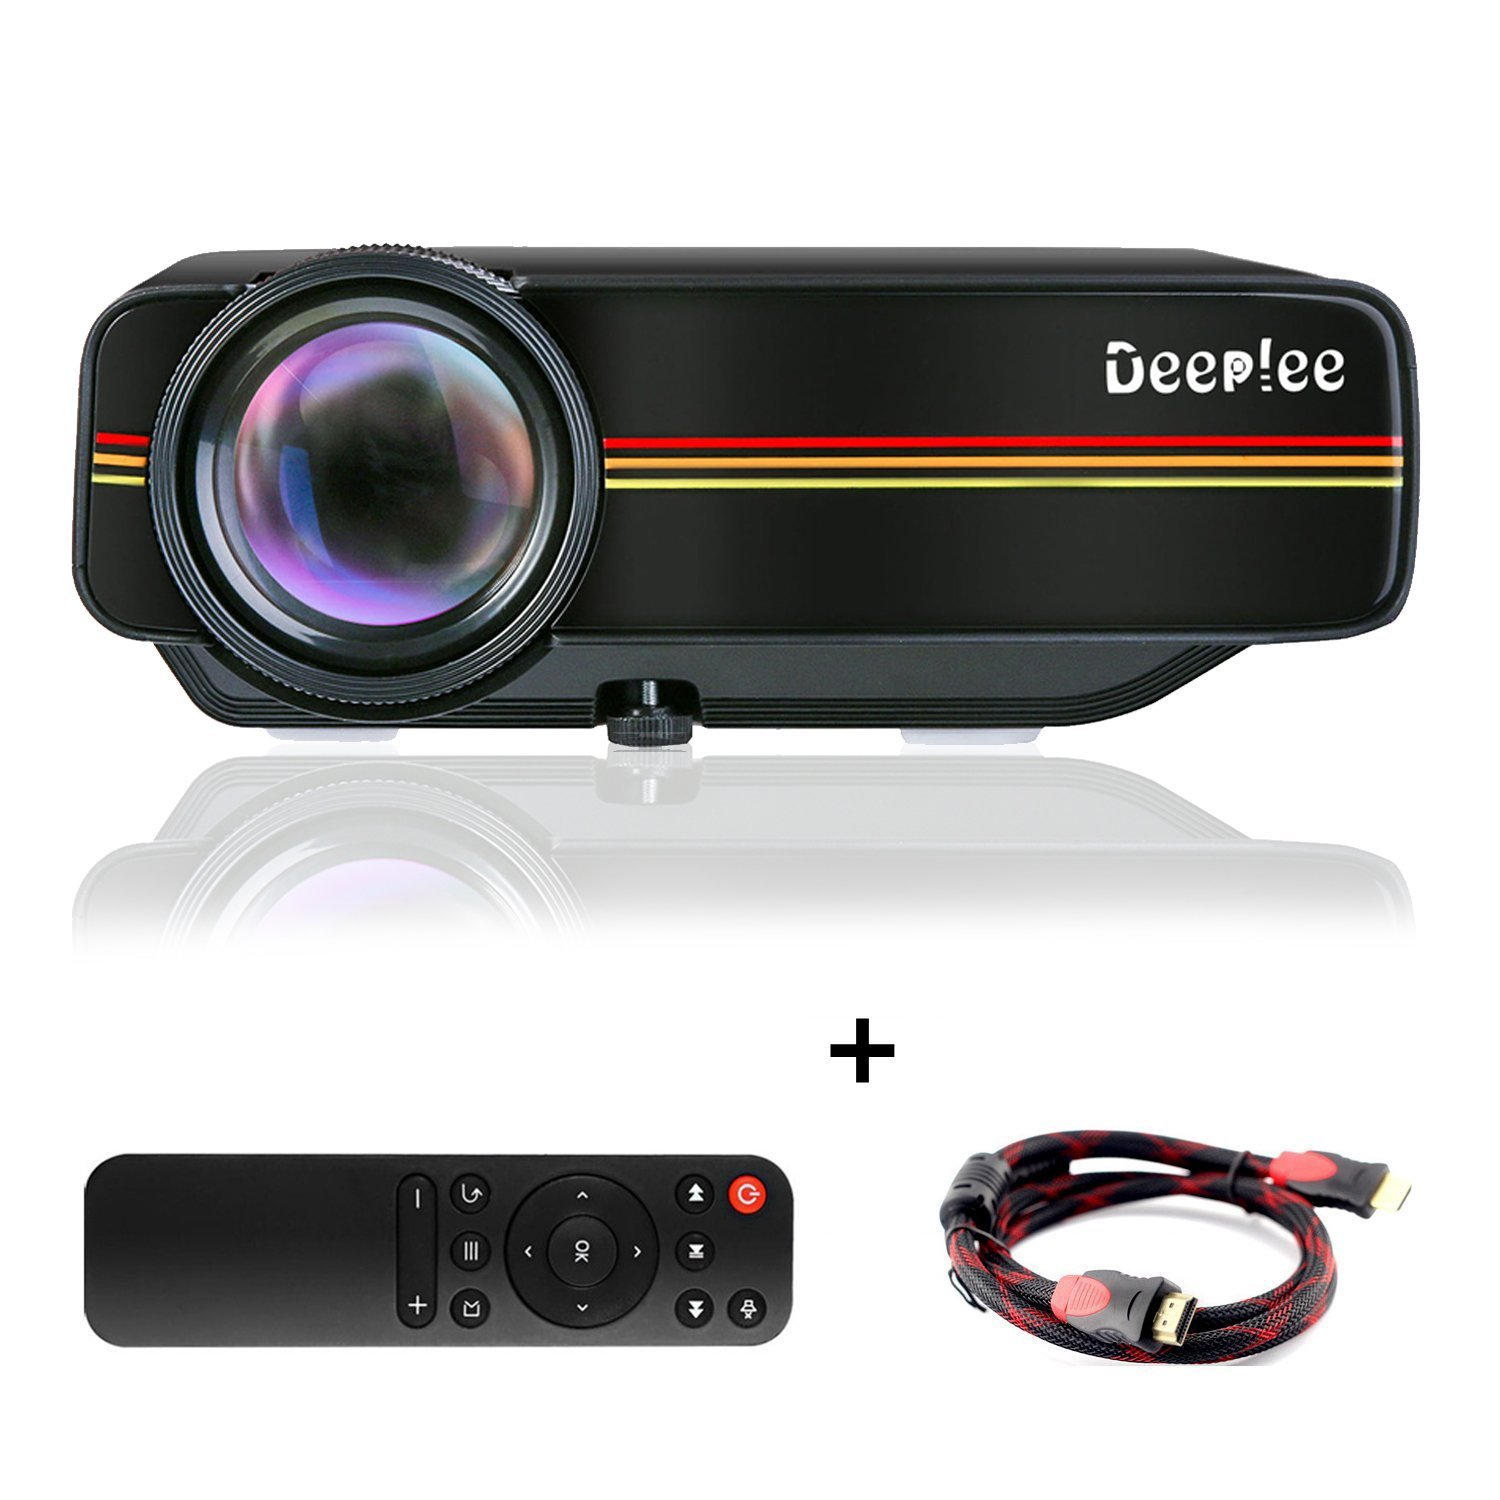 DeepLee DP400 Mini projector